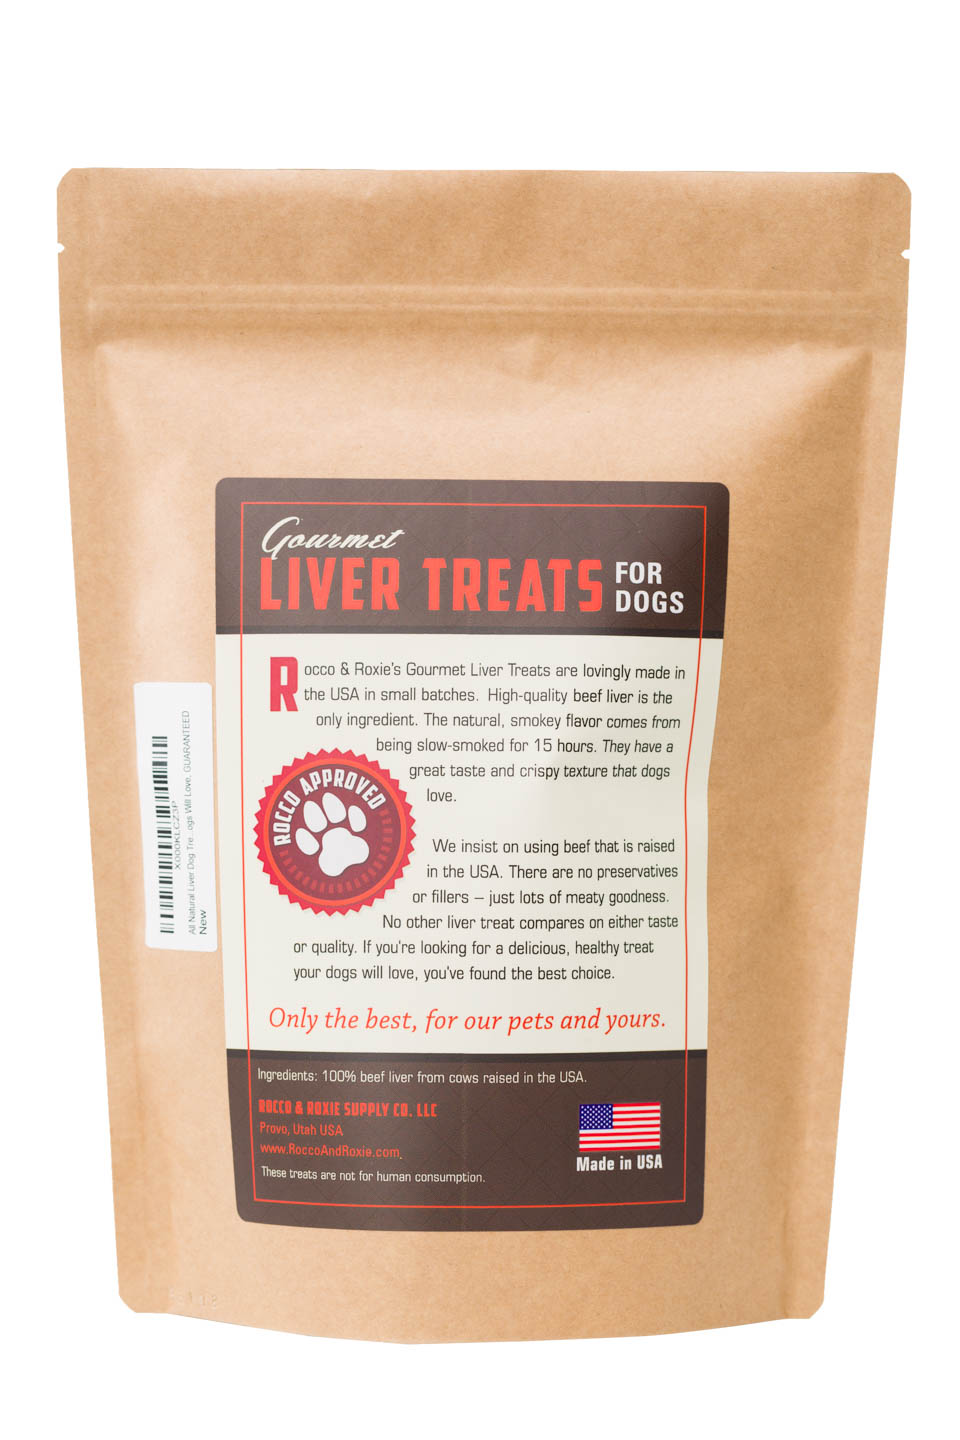 Rocco & Roxie All Natural Liver Treats for Dogs Product Photography back of the bag